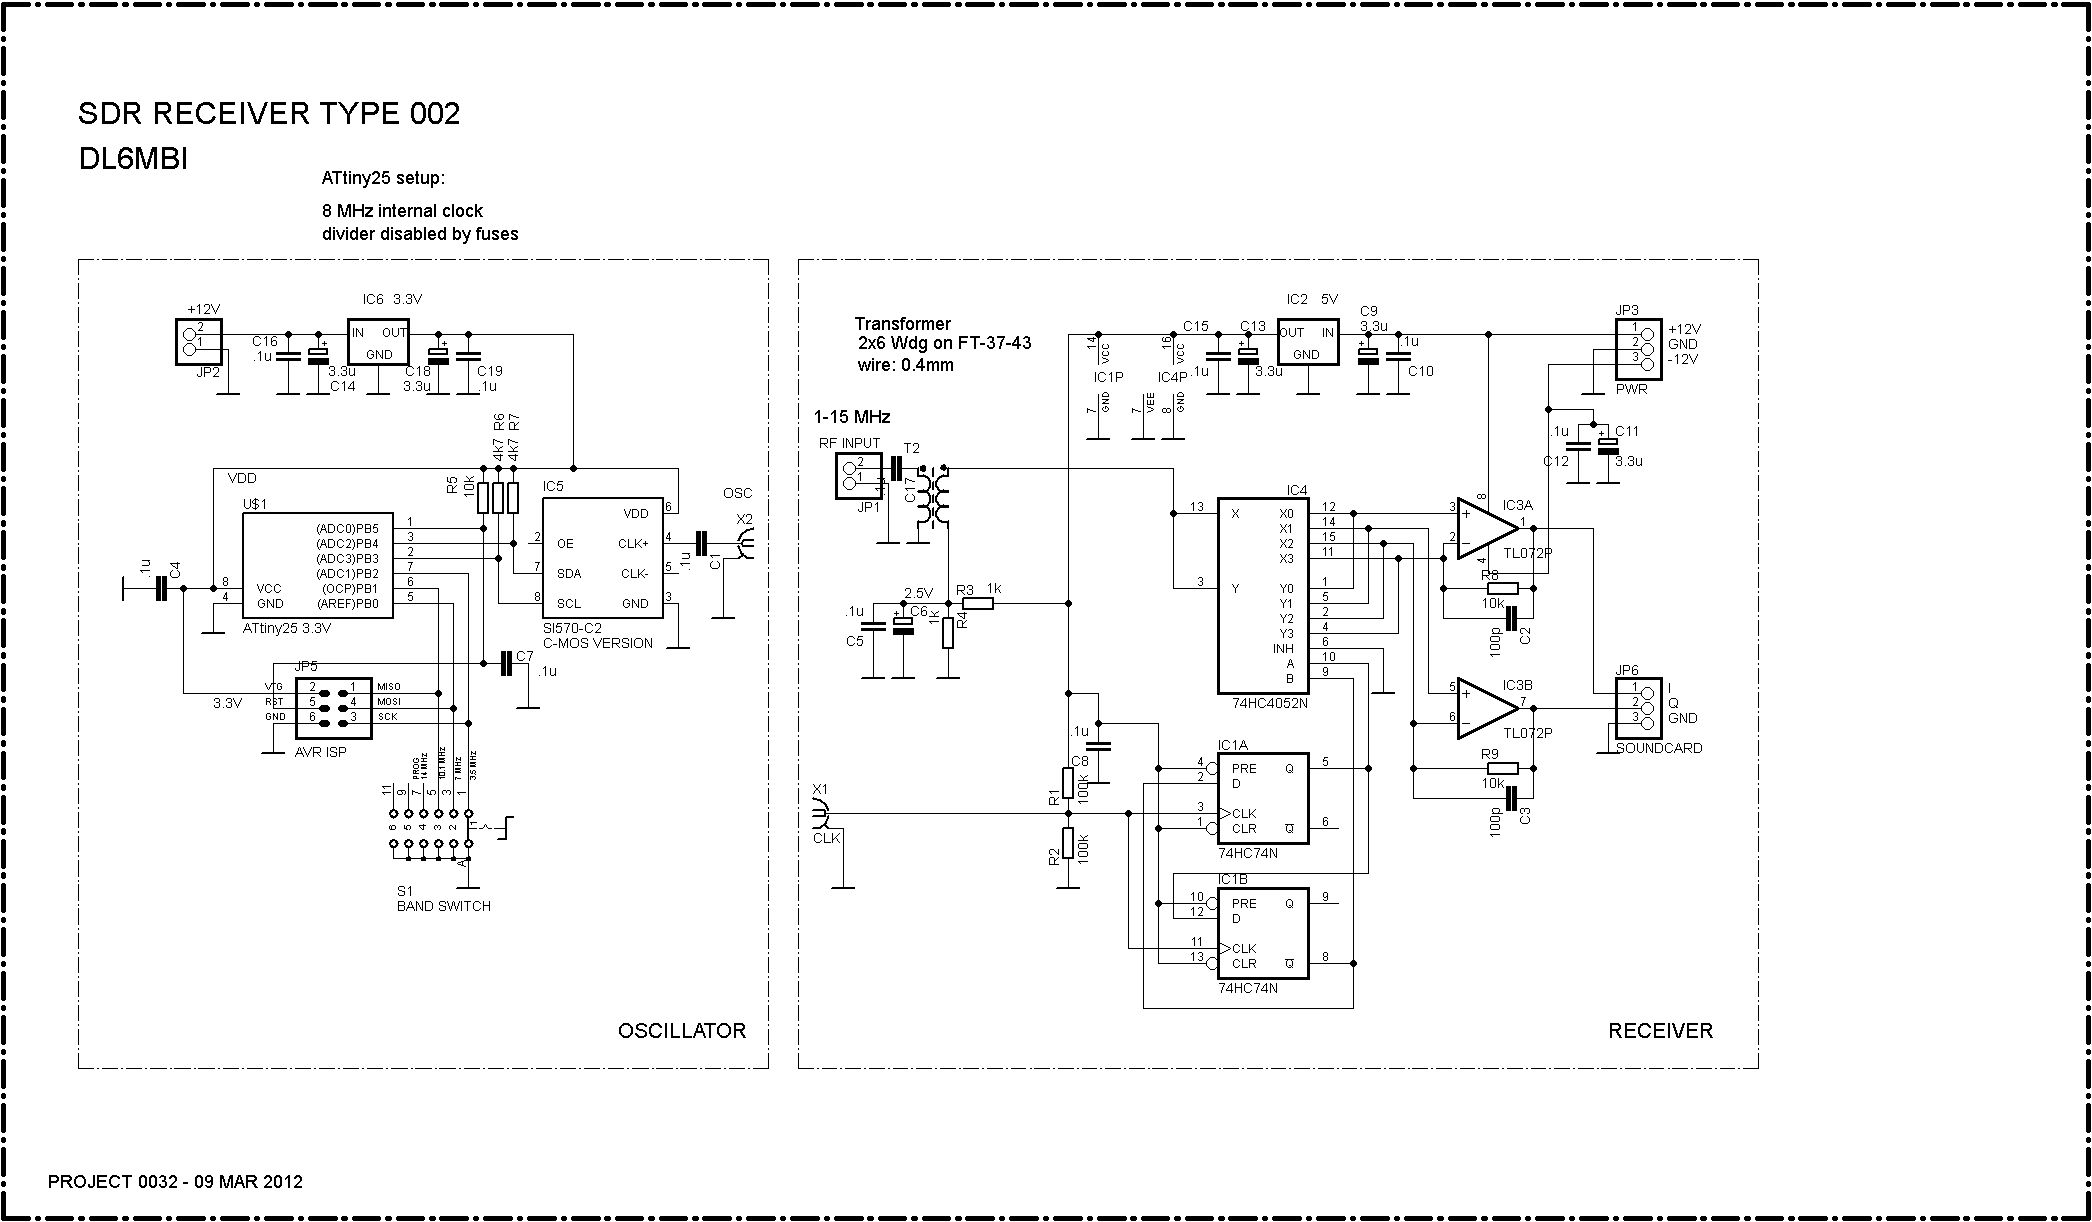 PR0032 CIRCUIT DIAGRAM